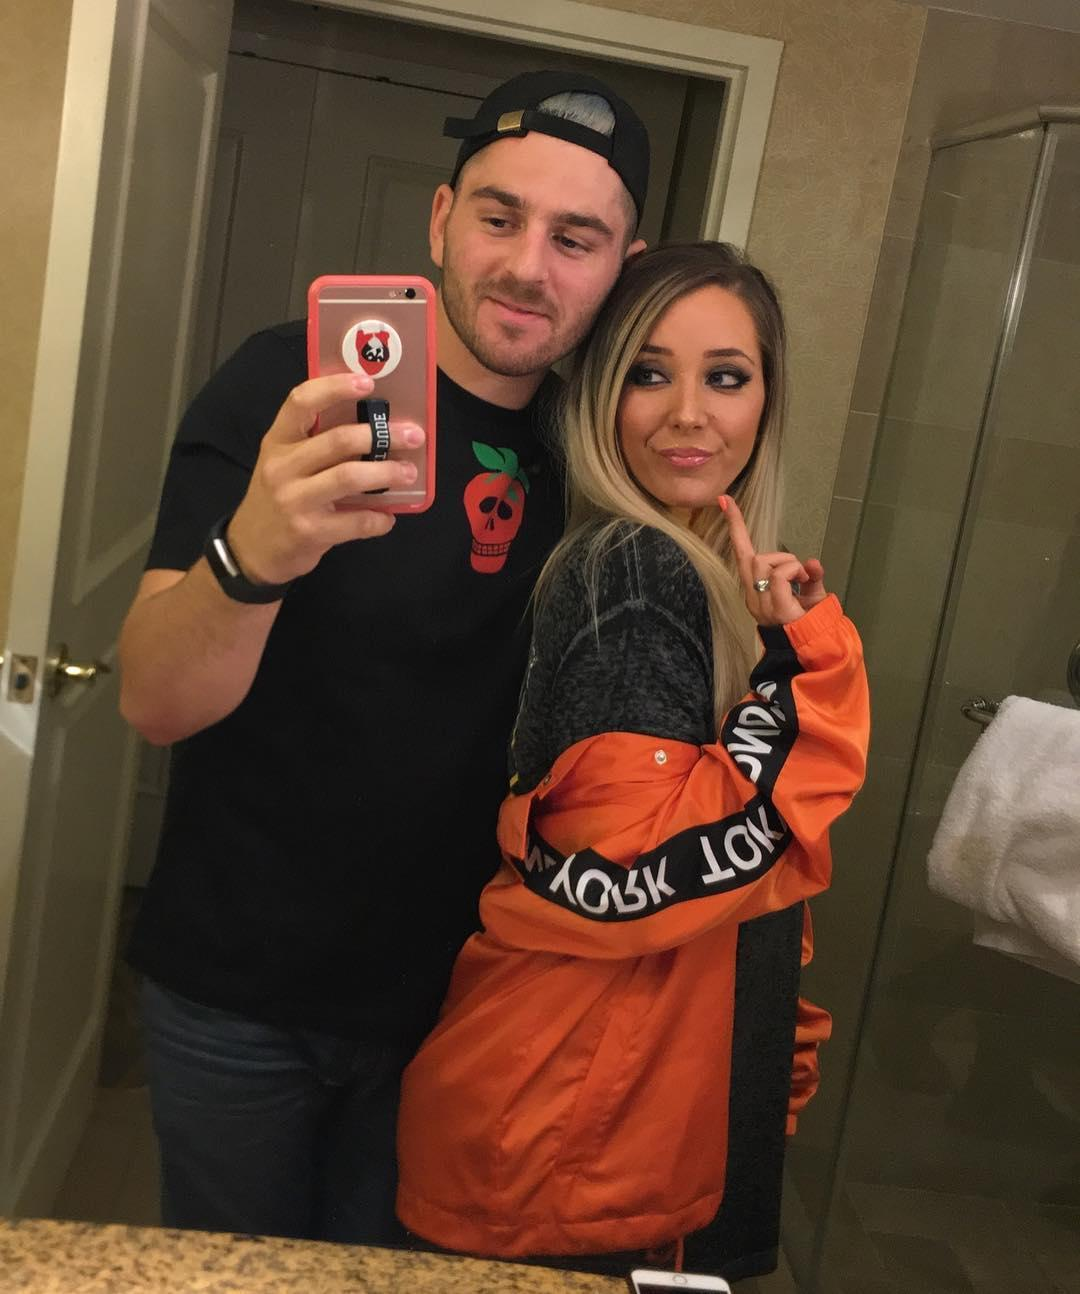 jenna-marbles-and-julien-solomita-1567107727782.jpg